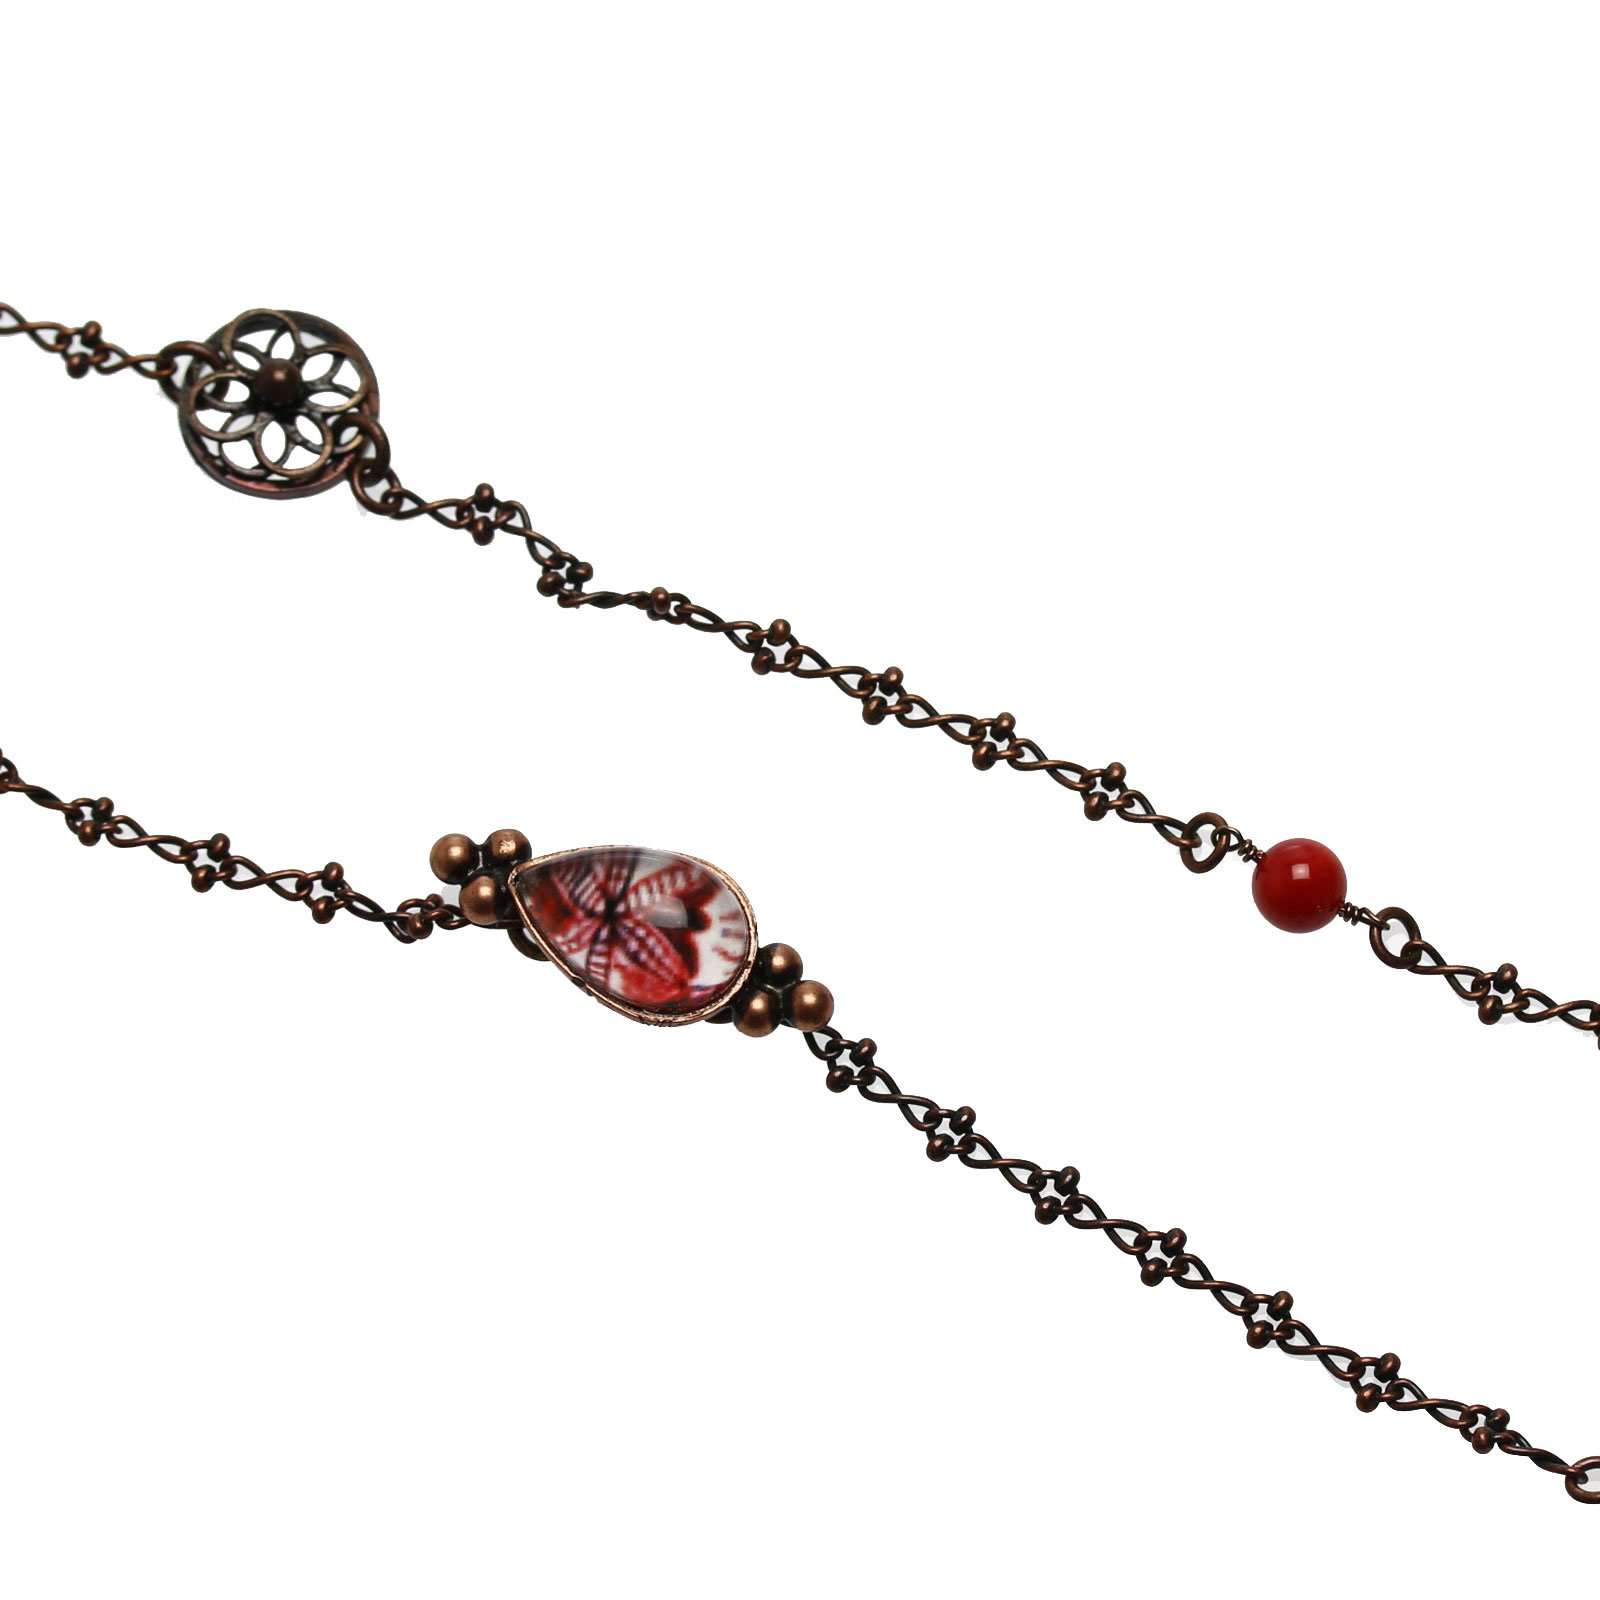 Tamarusan A Floral Design Antique Style For Glasses Chain Coral Red nickel free